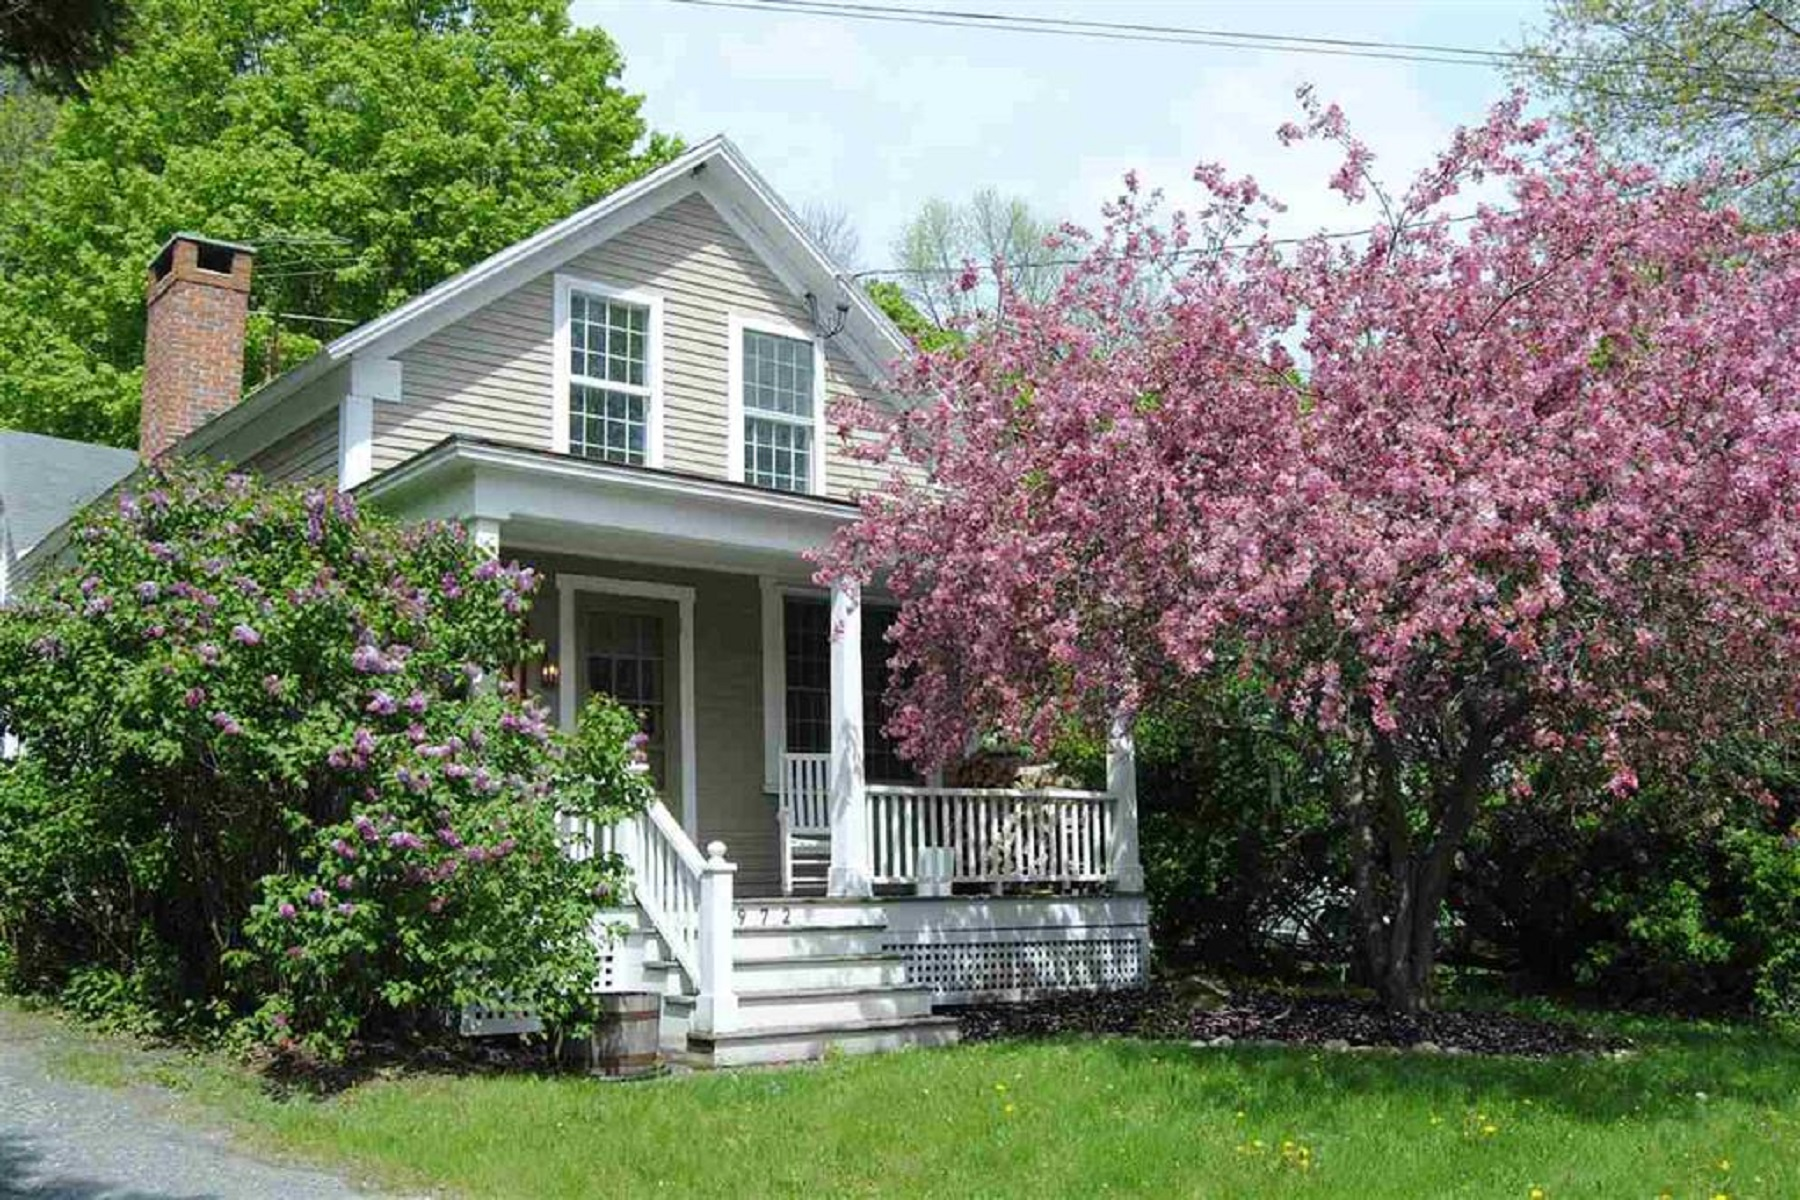 Single Family Homes for Sale at Refurbished South Woodstock Cottage 4972 South Road South Woodstock, Vermont 05071 United States